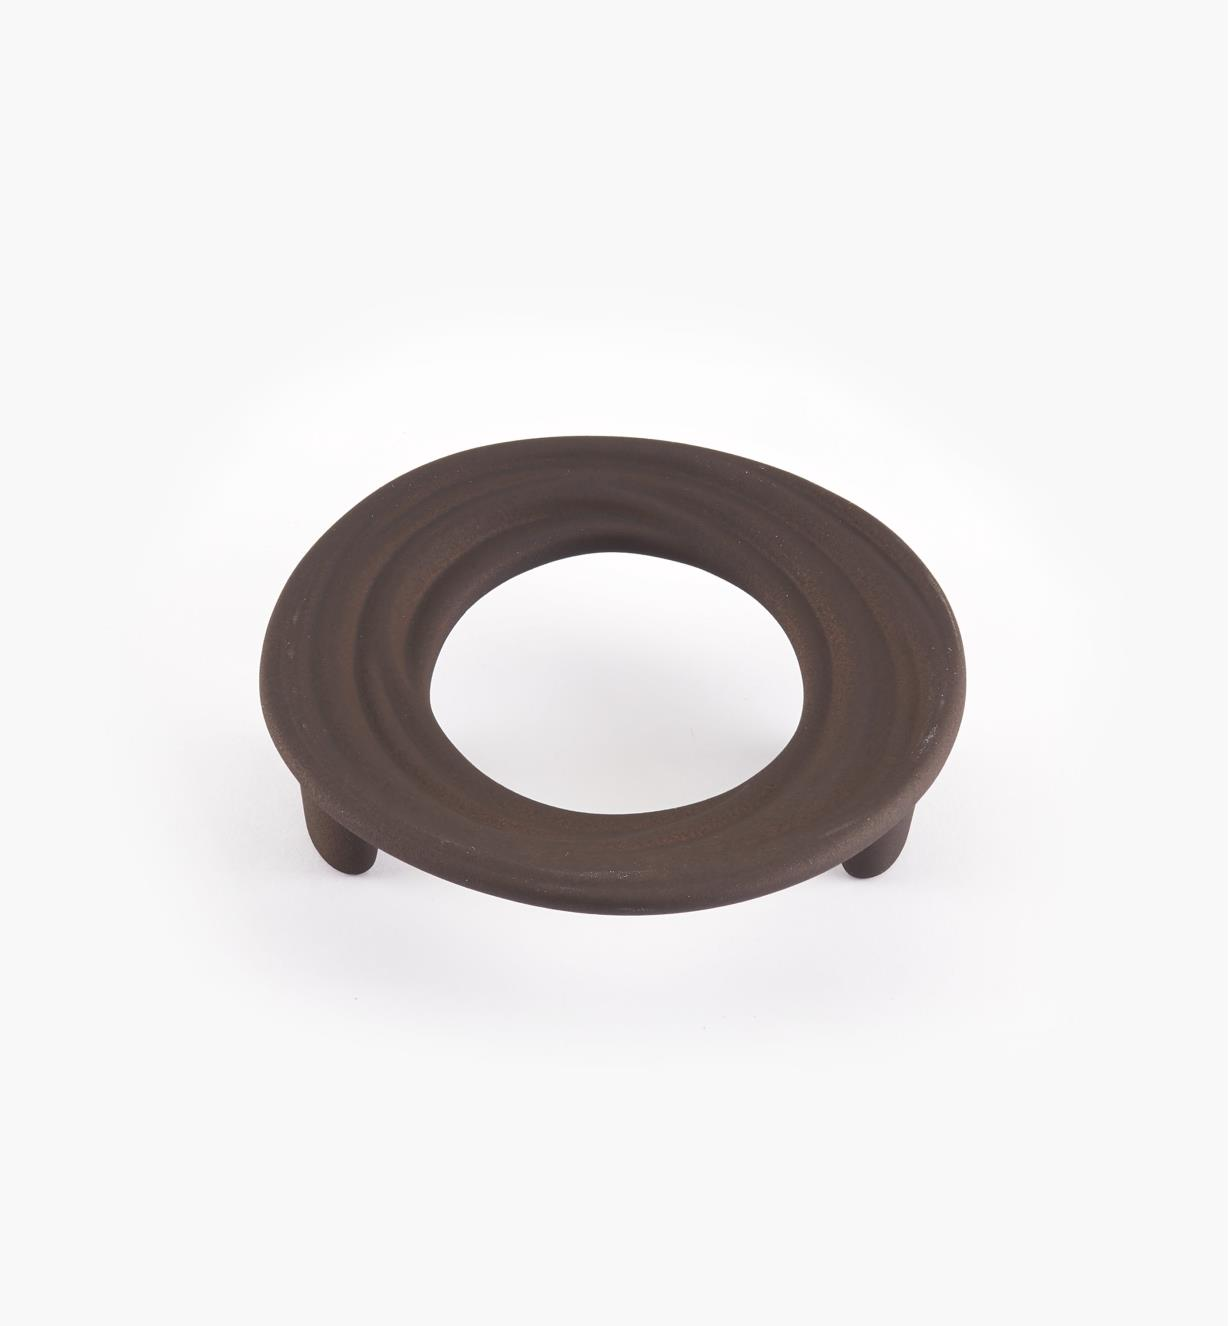 00A7416 - 64mm Oasis Round Handle, Kassite